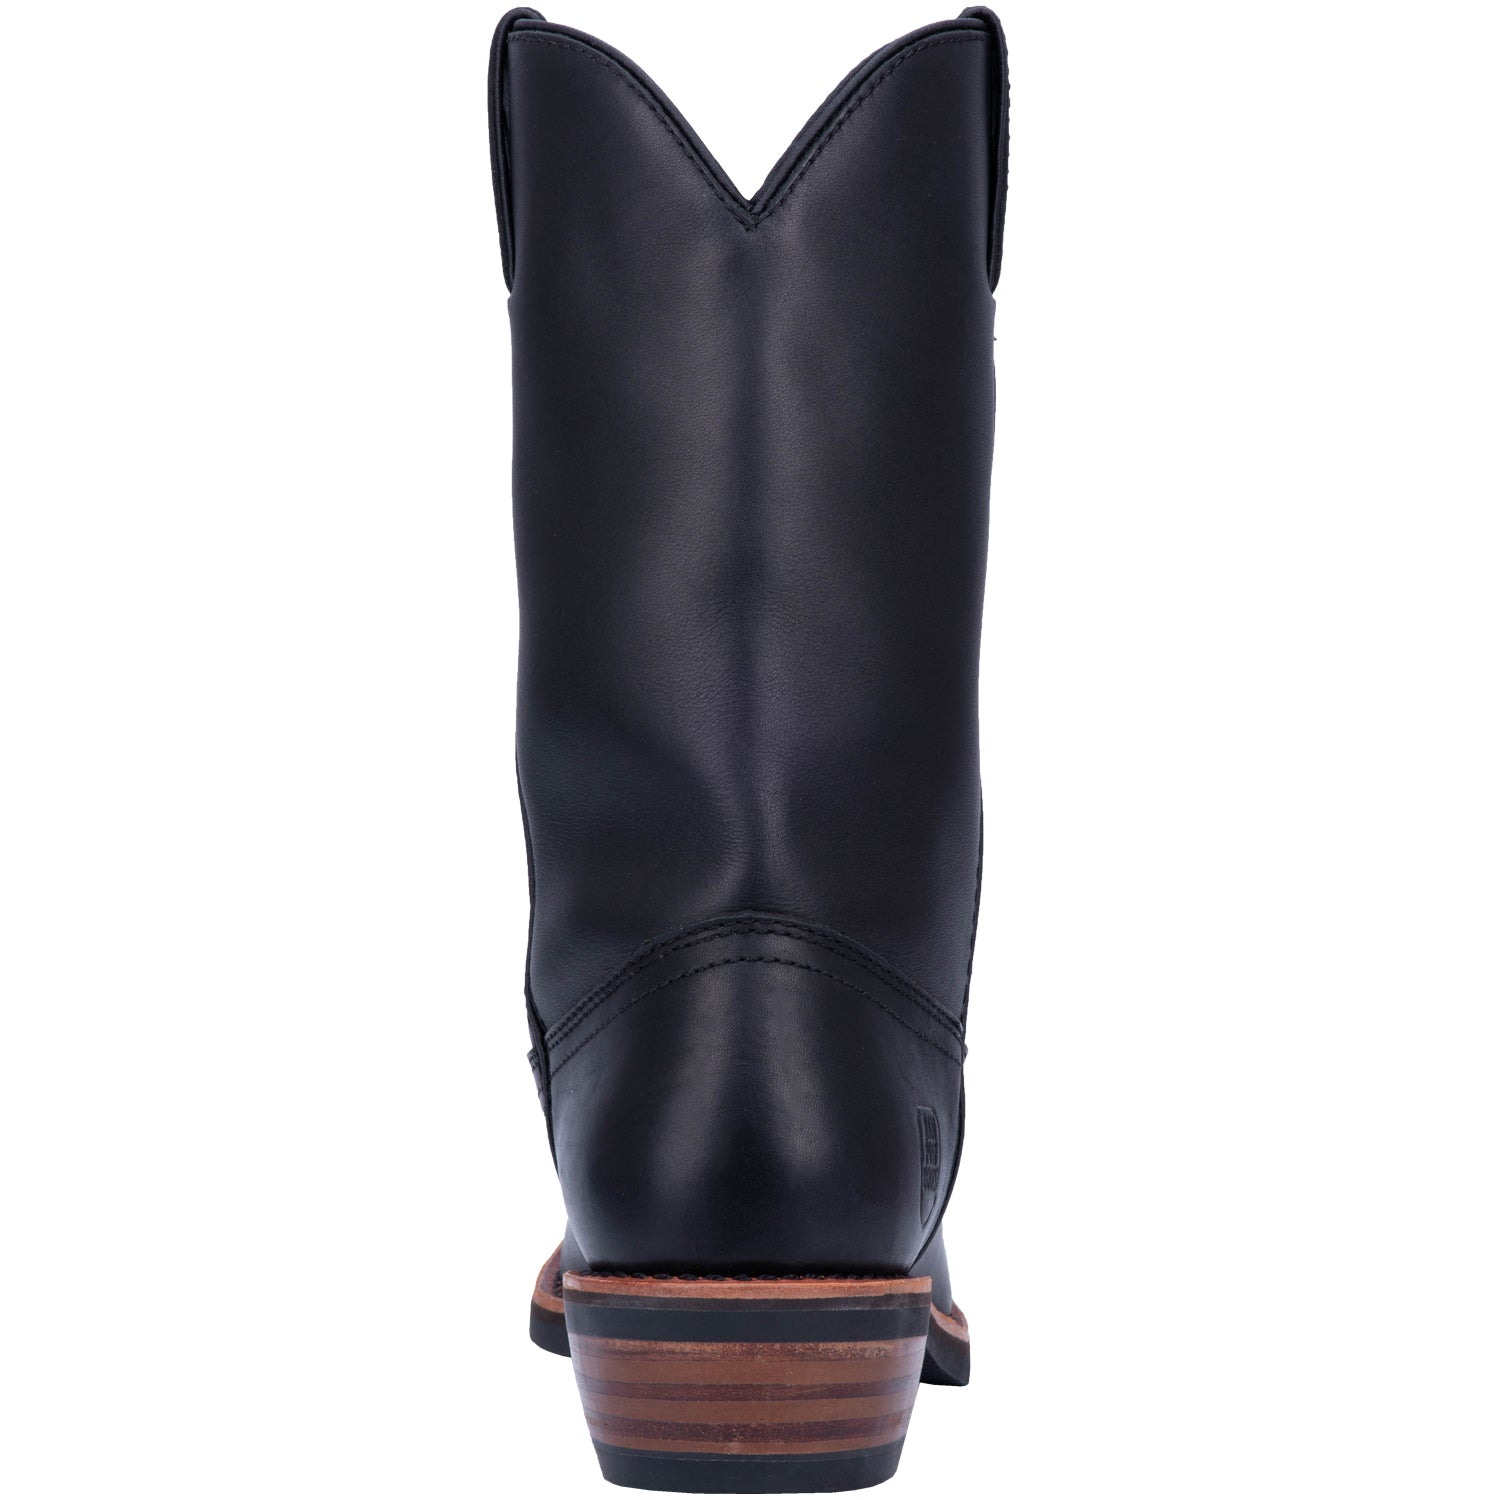 ALBUQUERQUE WATERPROOF LEATHER BOOT 4248832901162